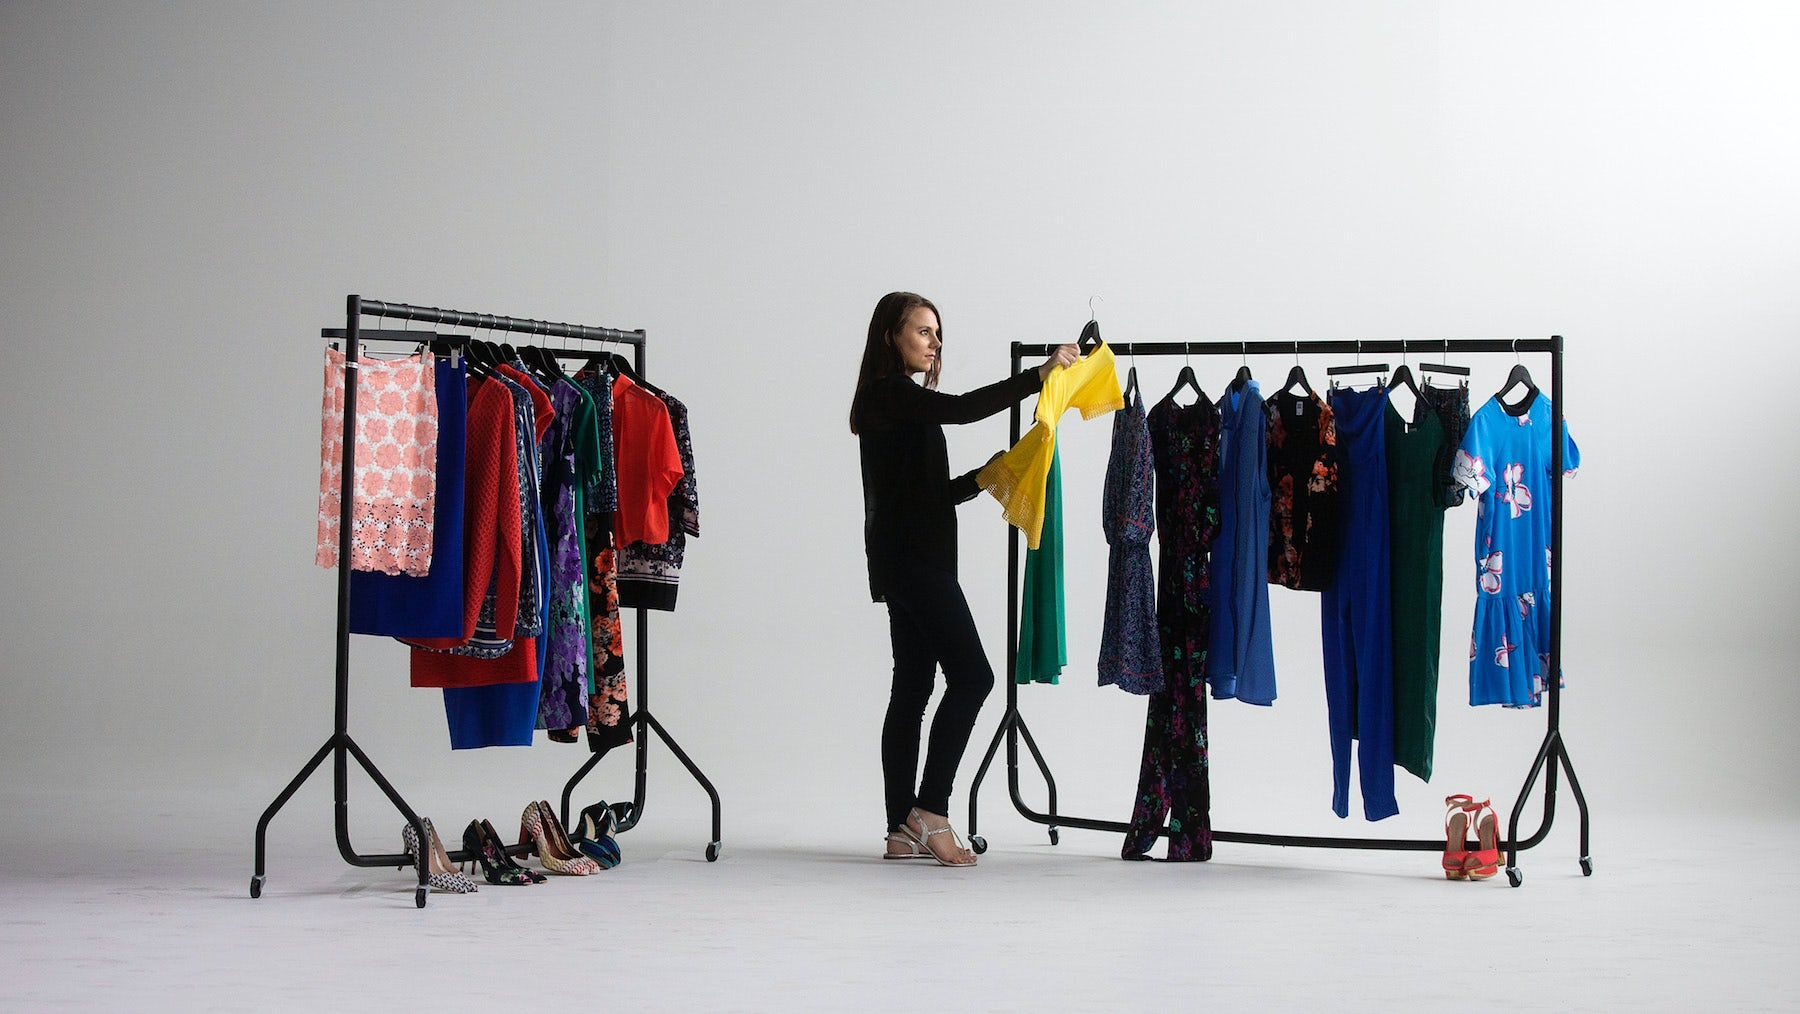 Inside Amazon's fashion studio in Shoreditch, London, which opened in 2015   Source: Getty